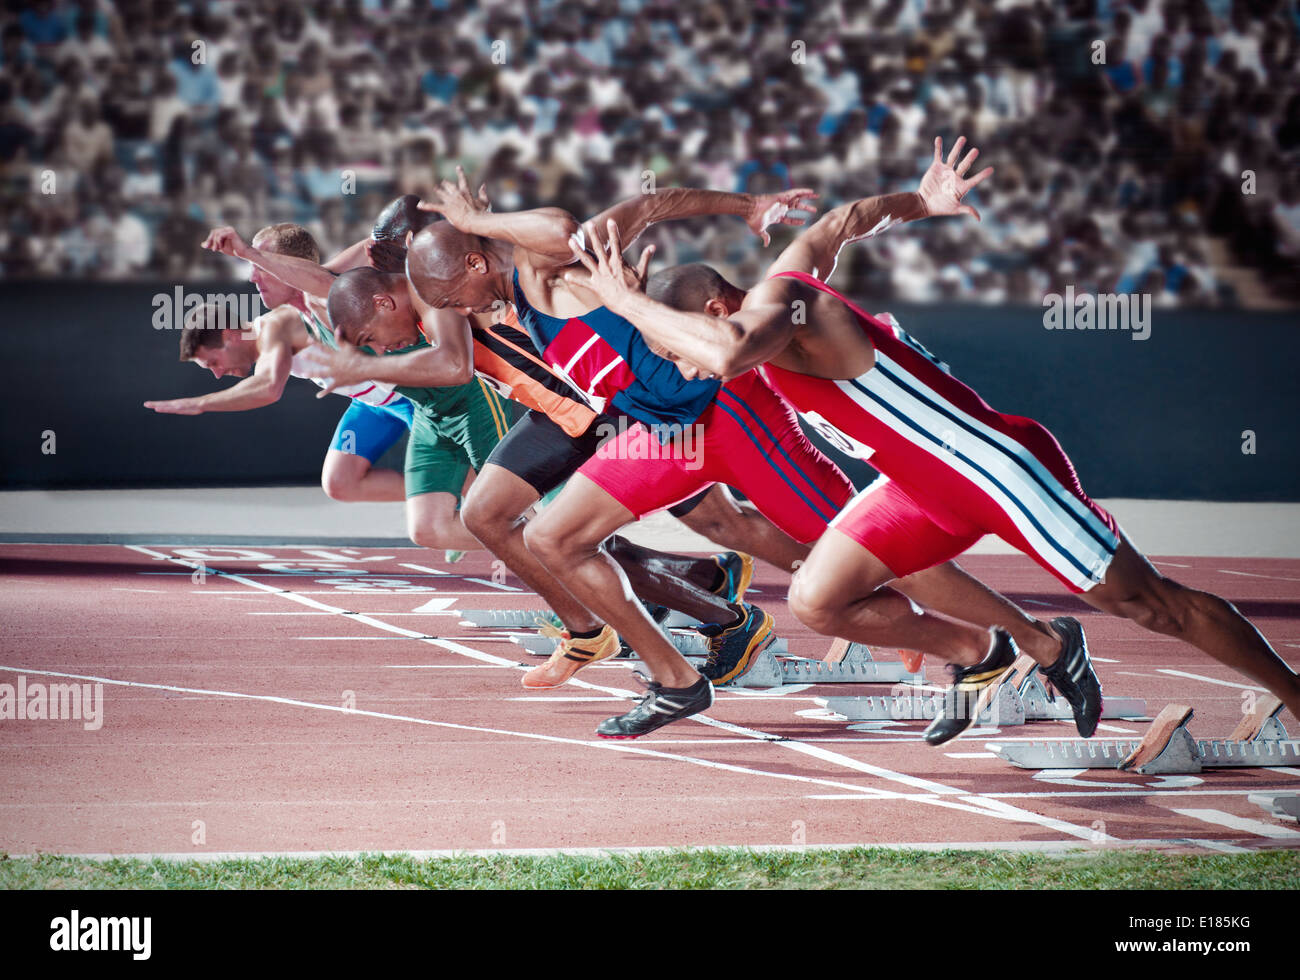 Runners taking off from starting blocks on track - Stock Image